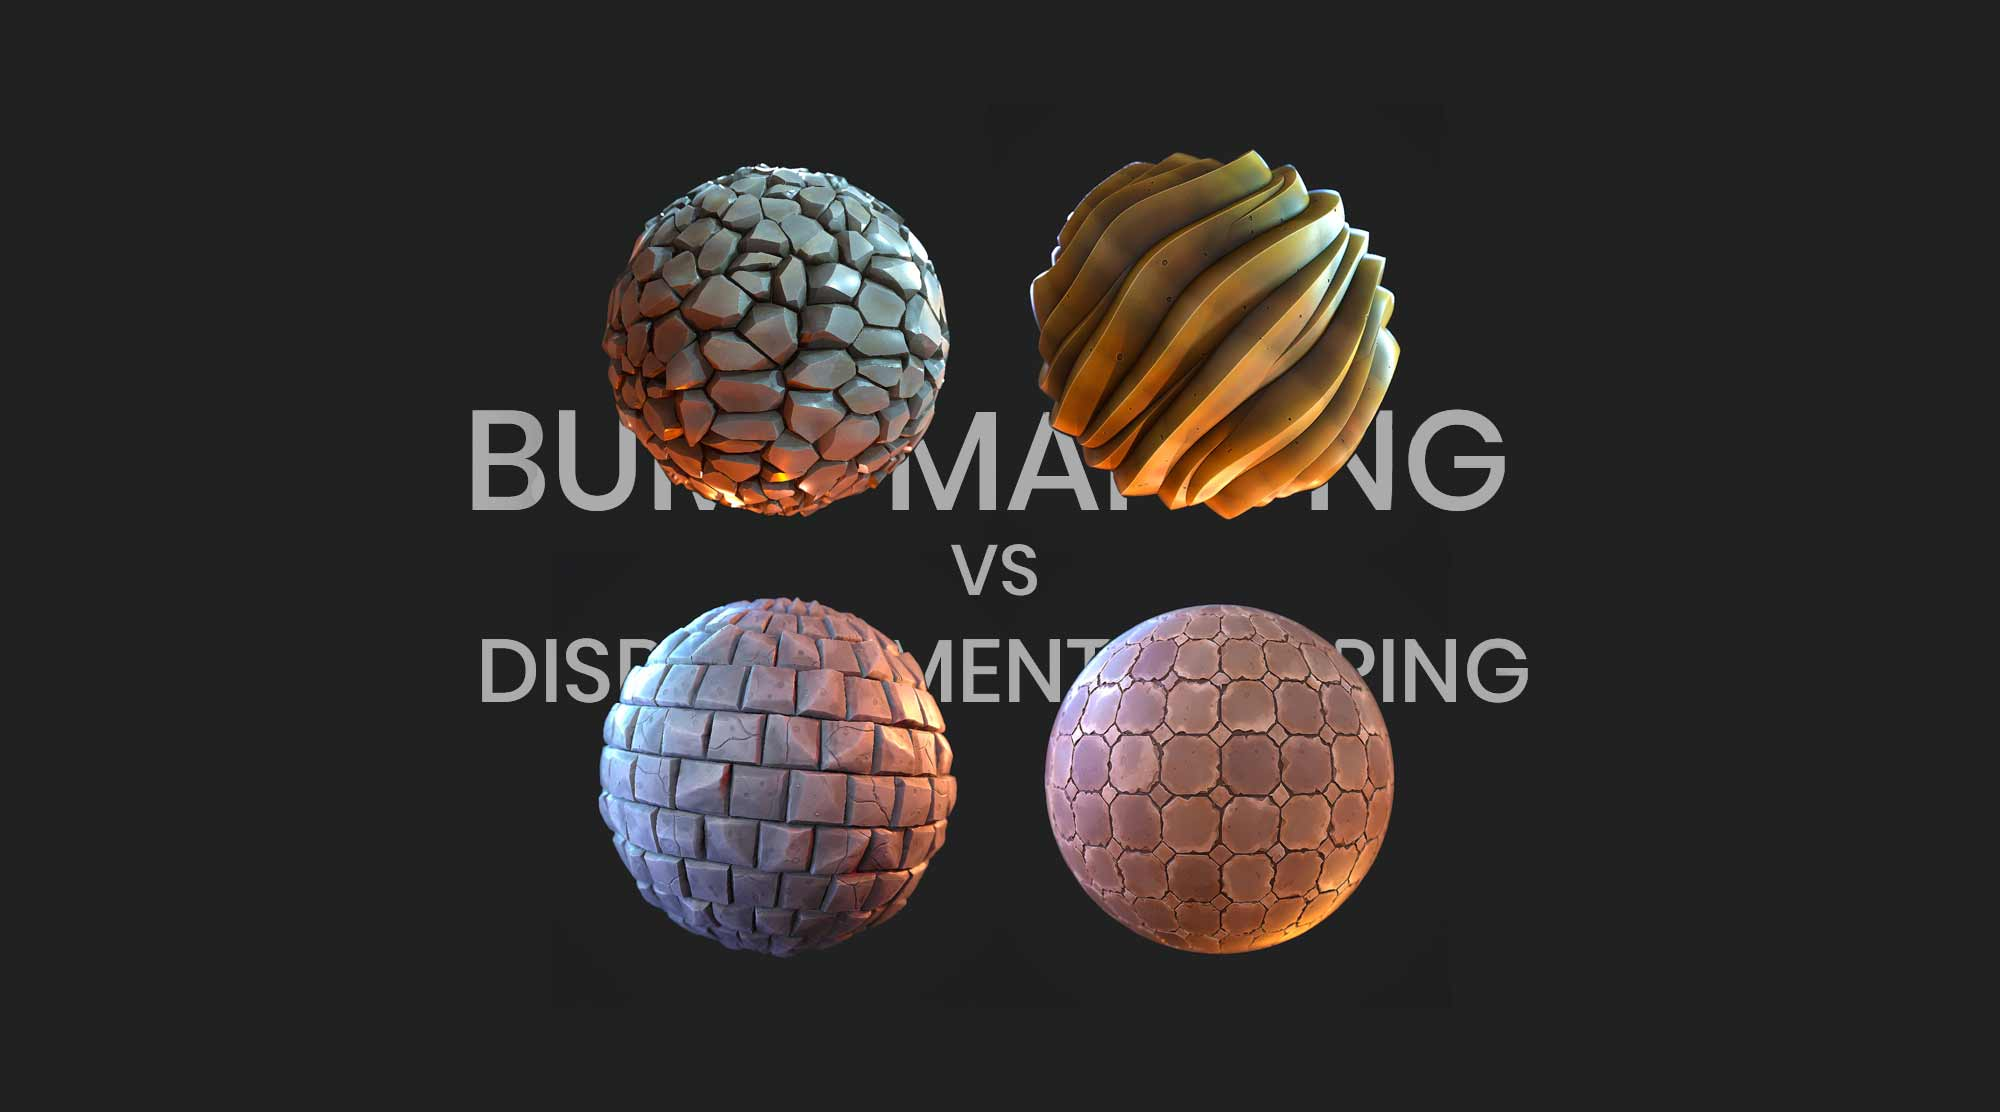 3Ds Max Training Institute - Learn Bump Mapping and Displacement Mapping